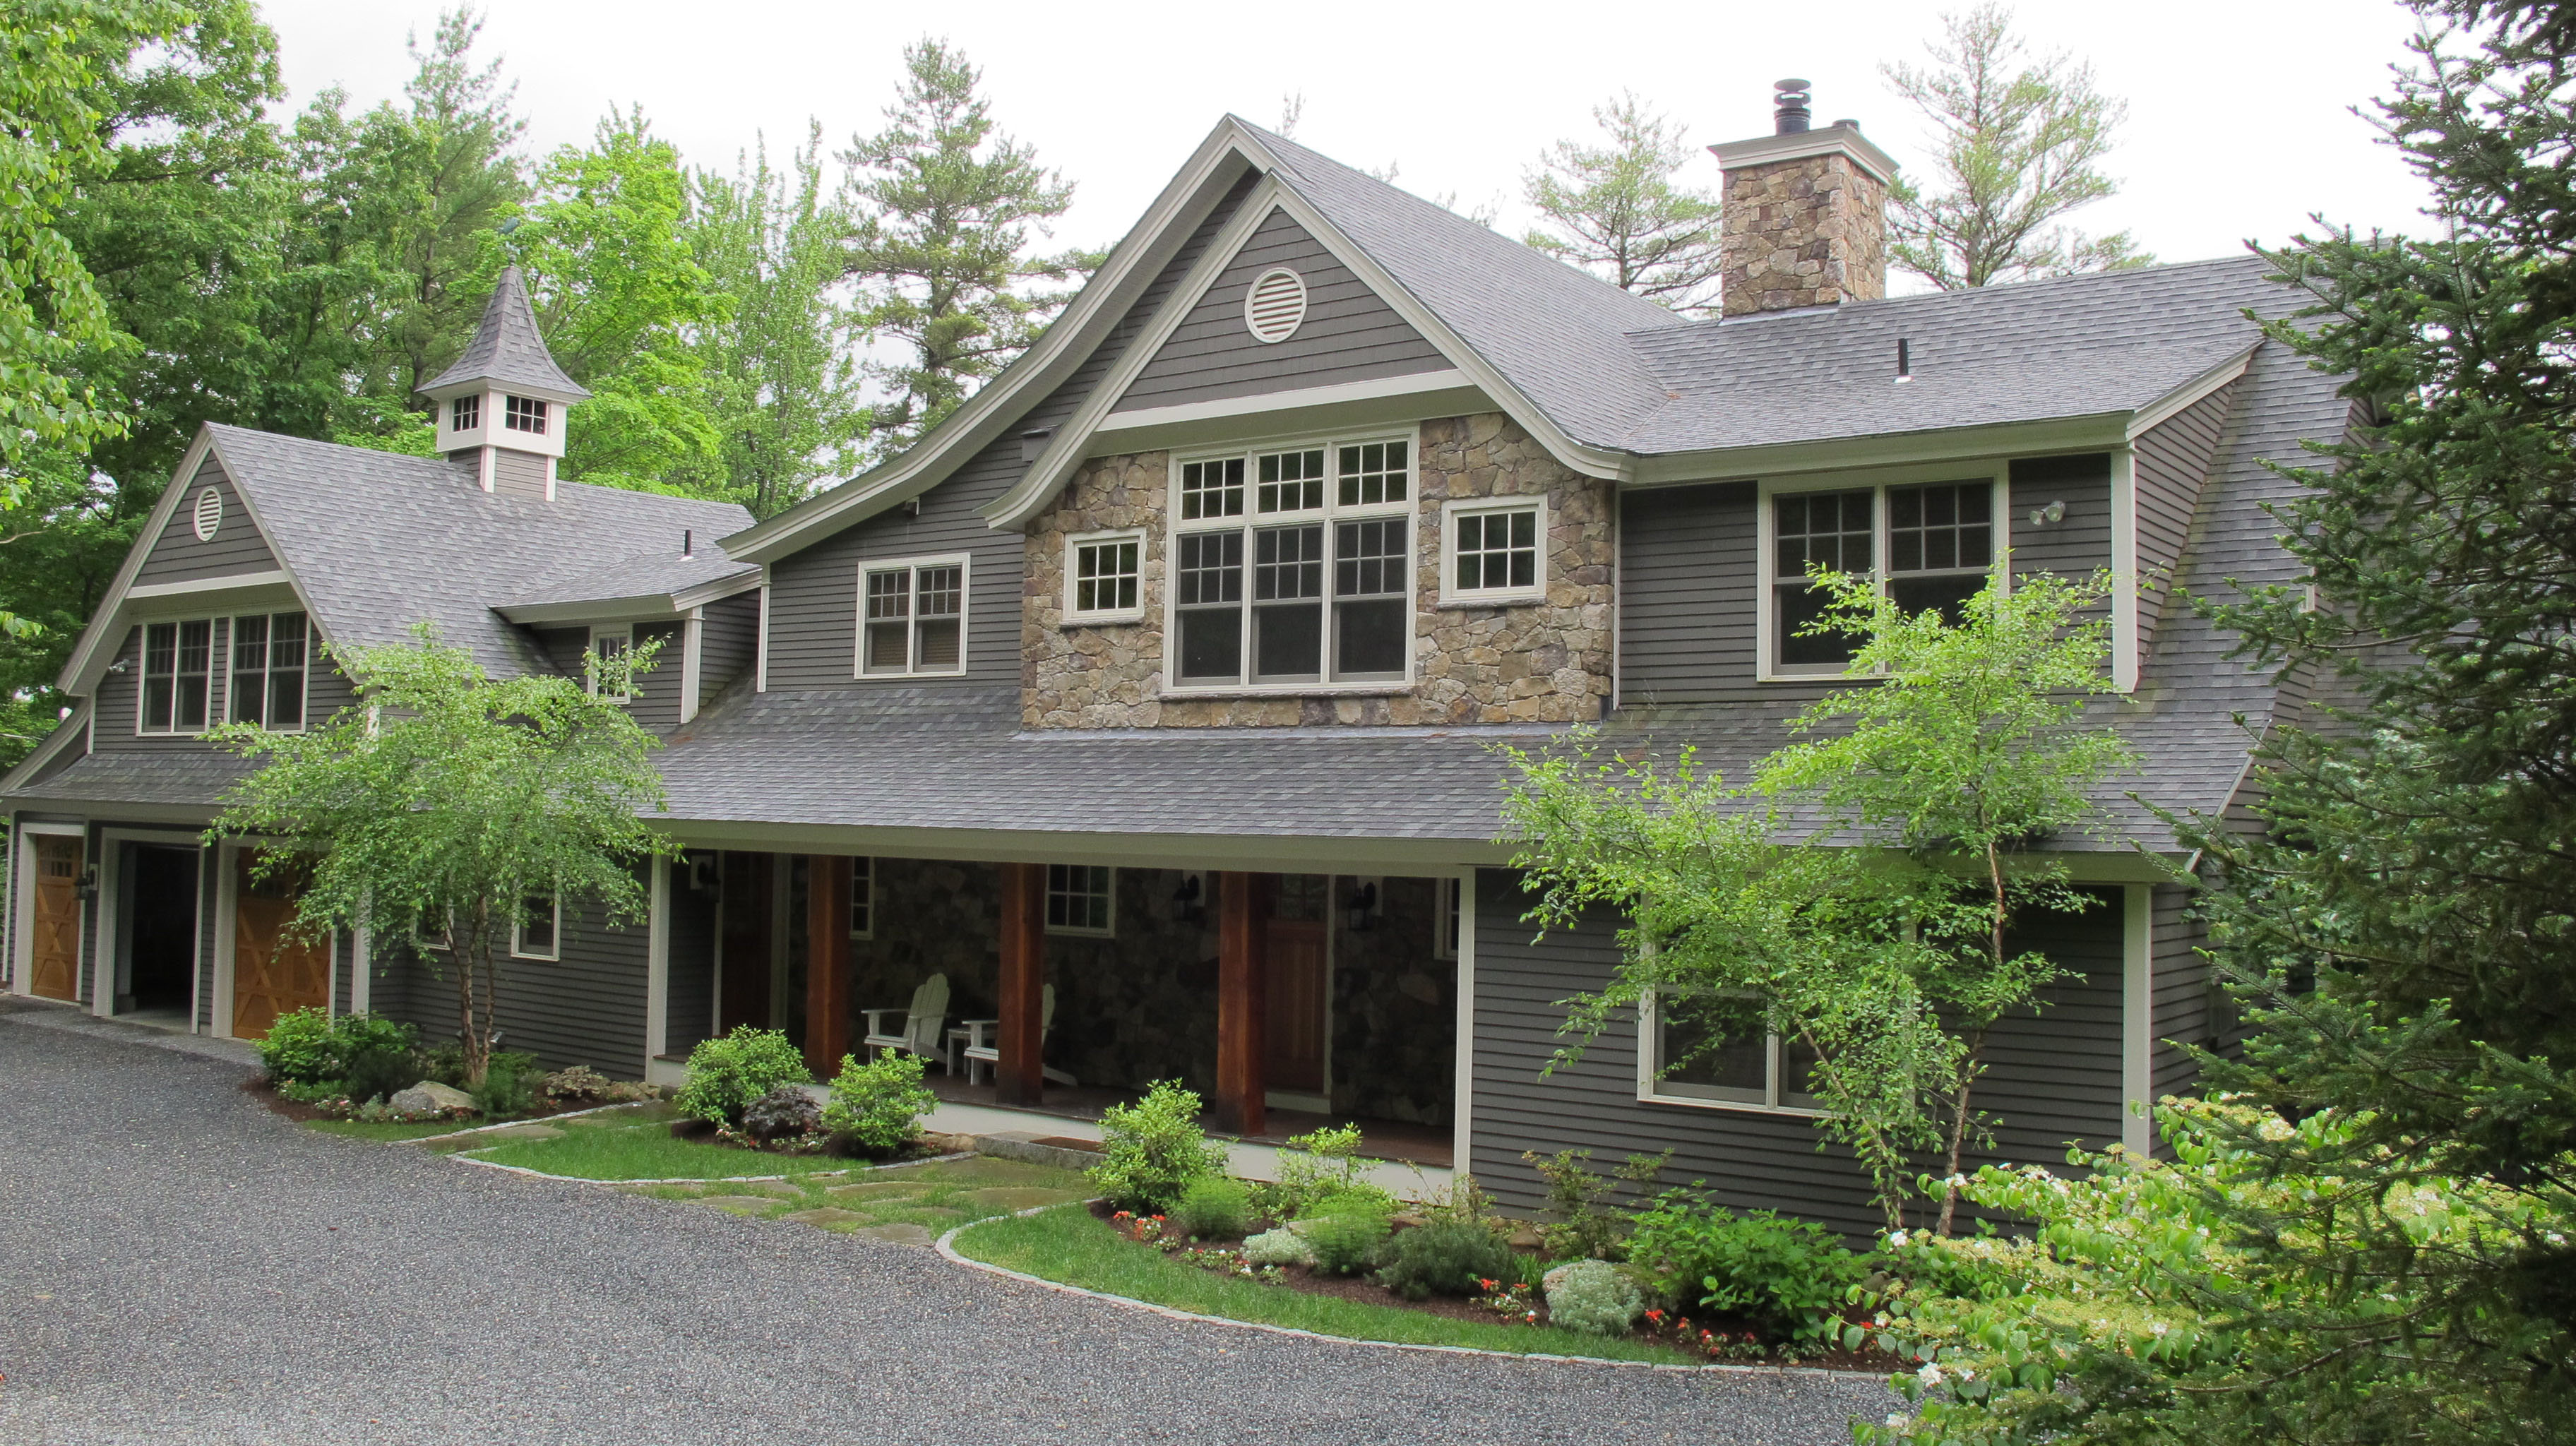 Lake Region Vacation Homes For Sale New Hampshire